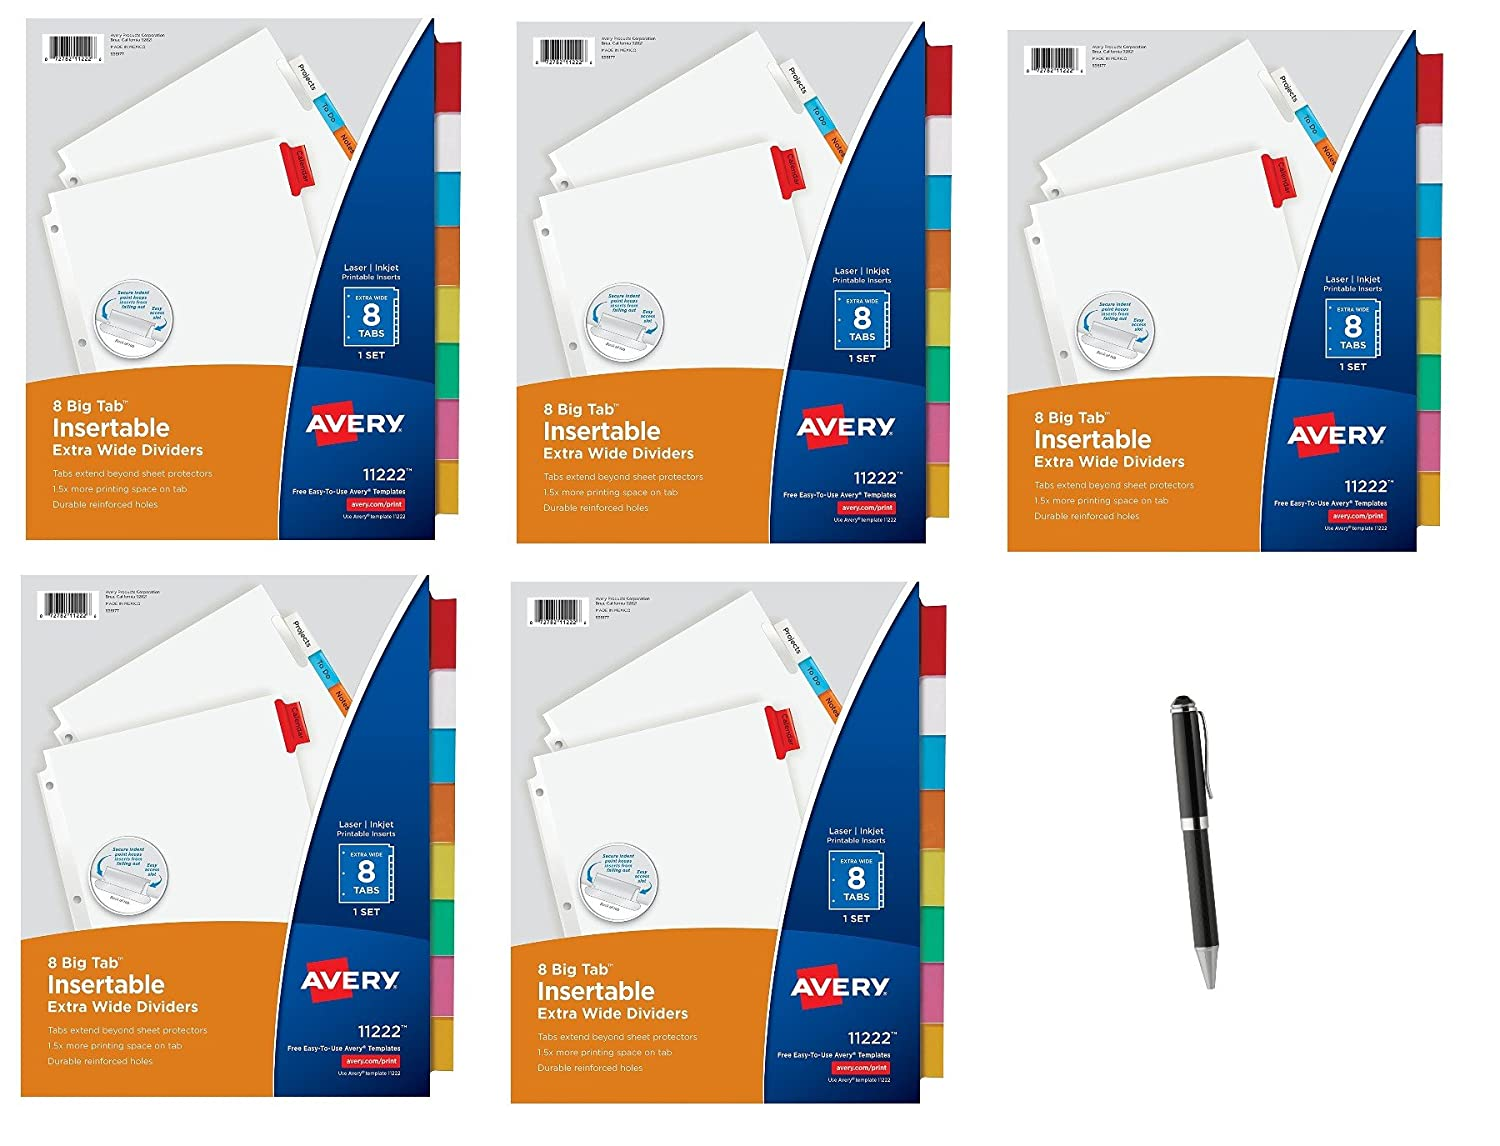 Avery Big Tab Insertable Extra Wide Dividers, 8 Multicolor Tabs, 1 Set (11222)